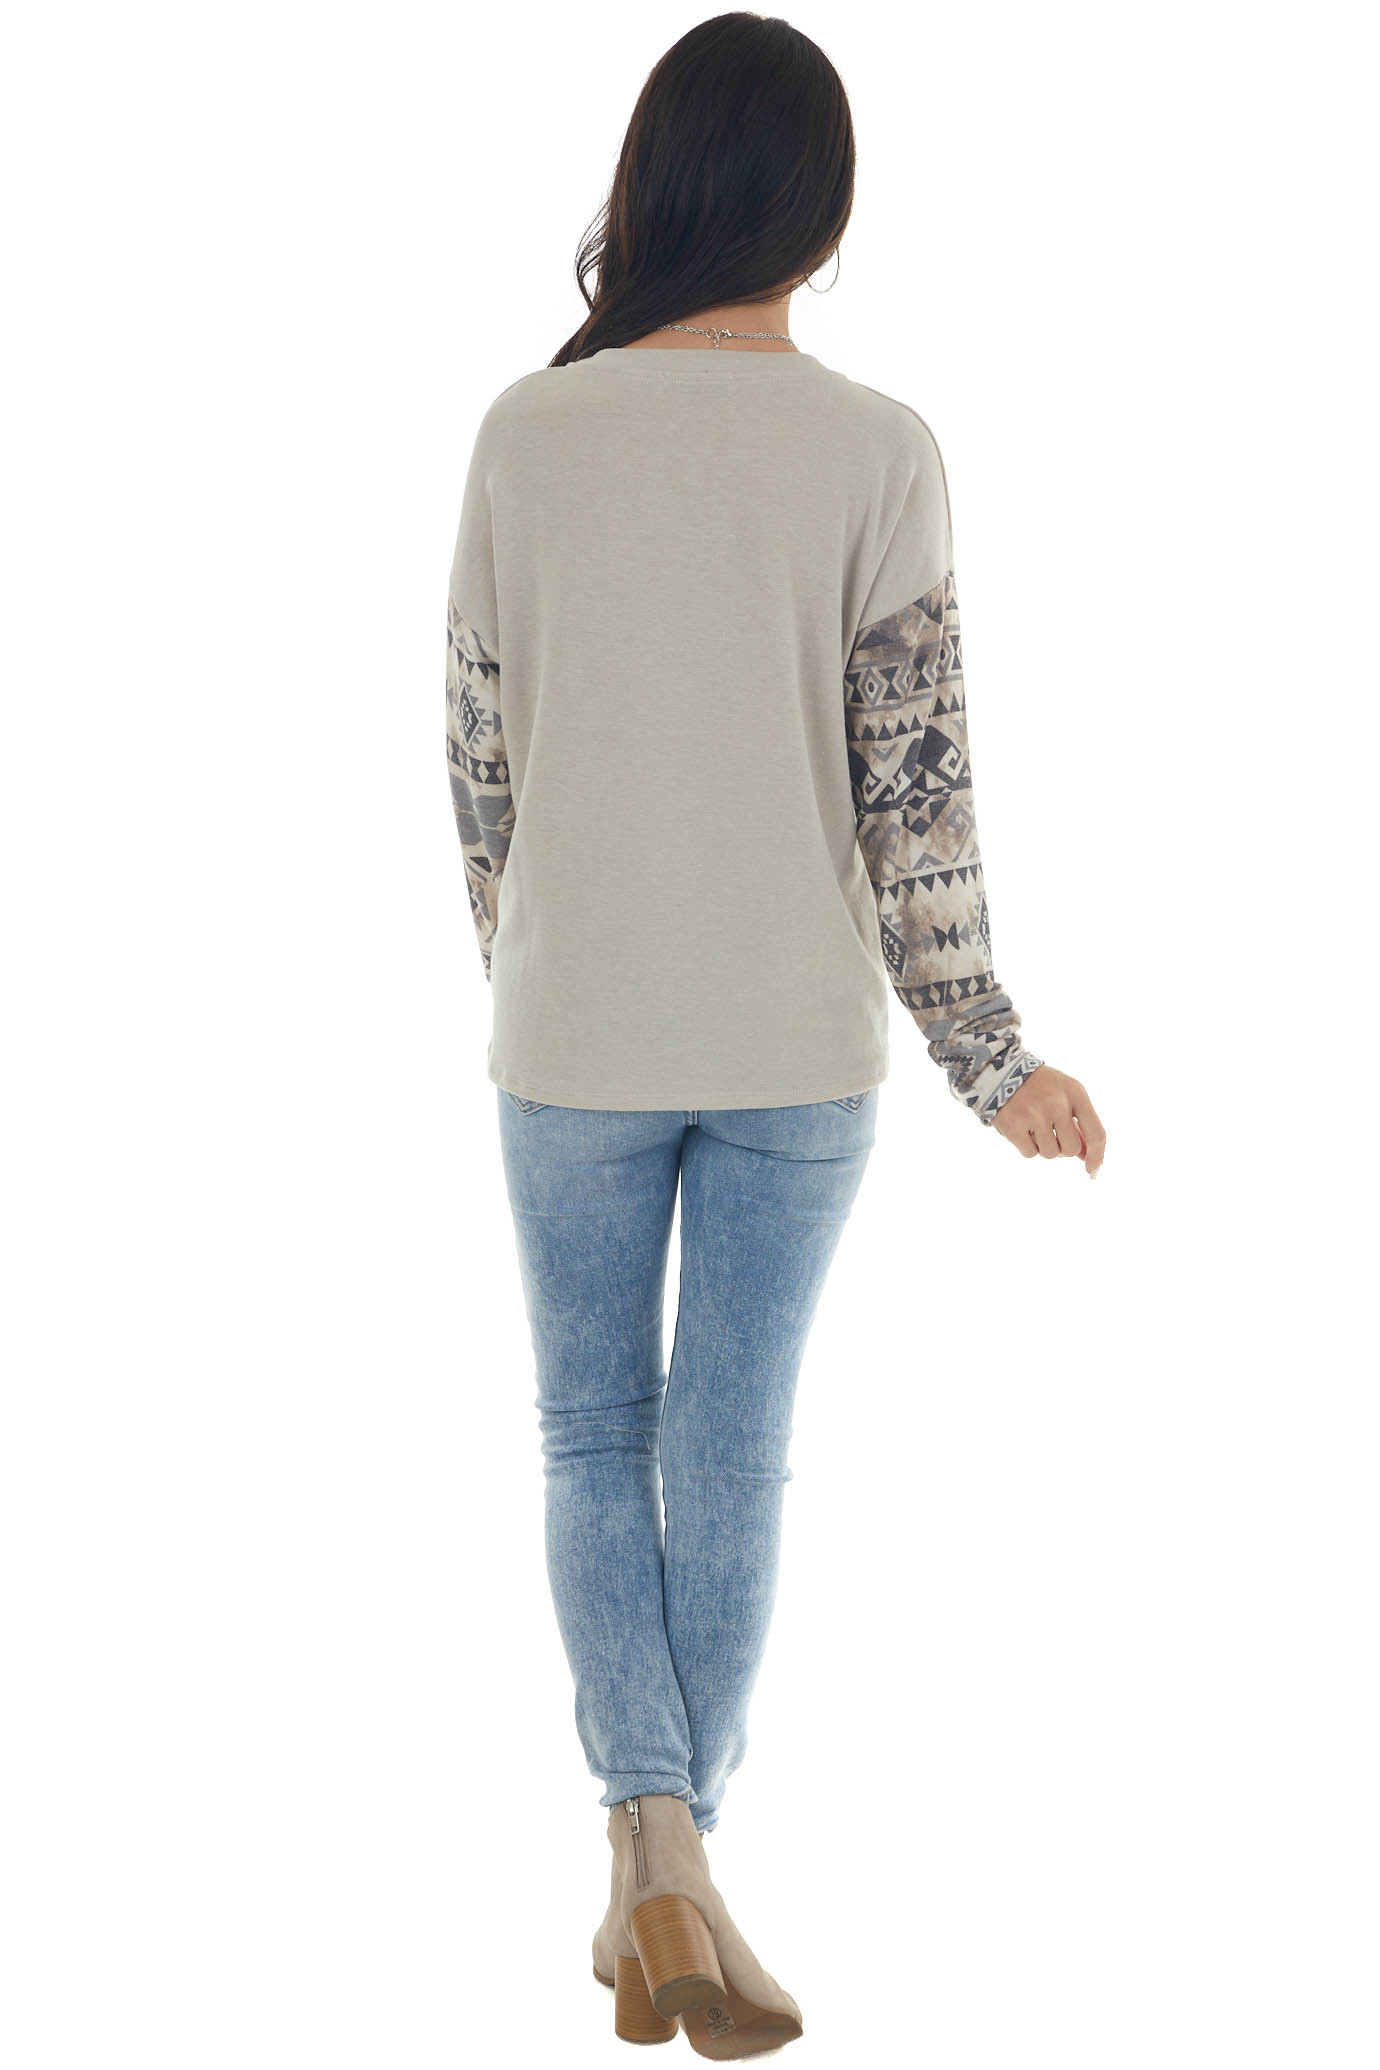 Oatmeal and Aztec Colorblock Long Sleeve Top